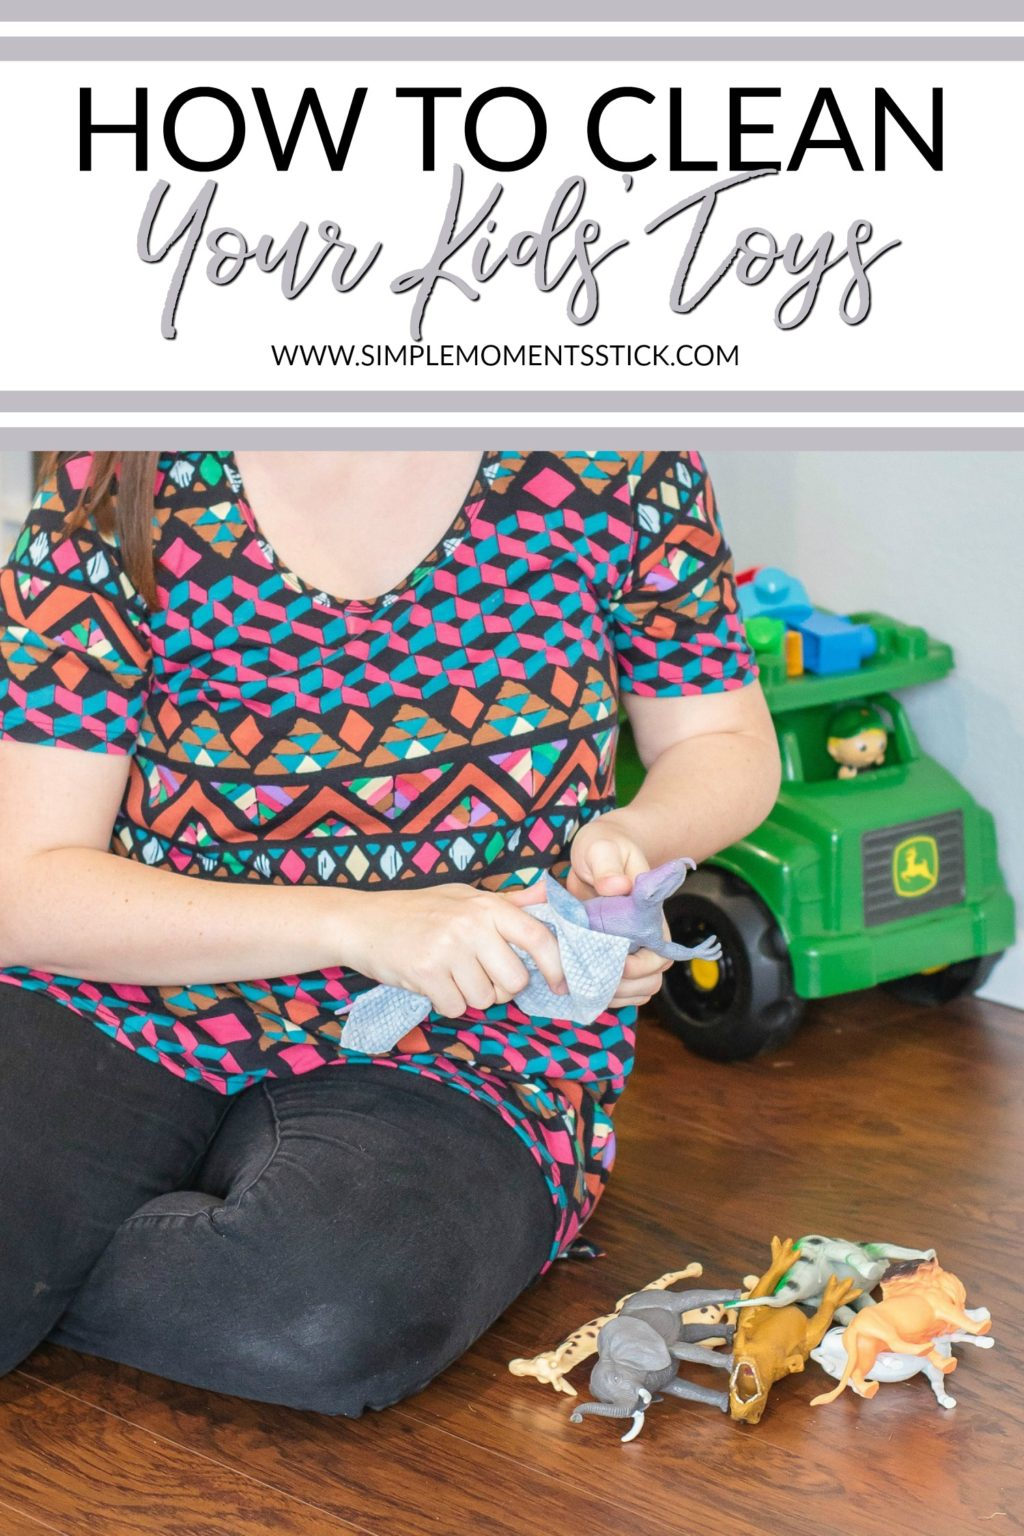 The full on guide for how to clean kid's toys. You're gonna want to read it! #cleaning #parenting #kidstoys #cleankidstoys #motherhood #toys #kids #childhood